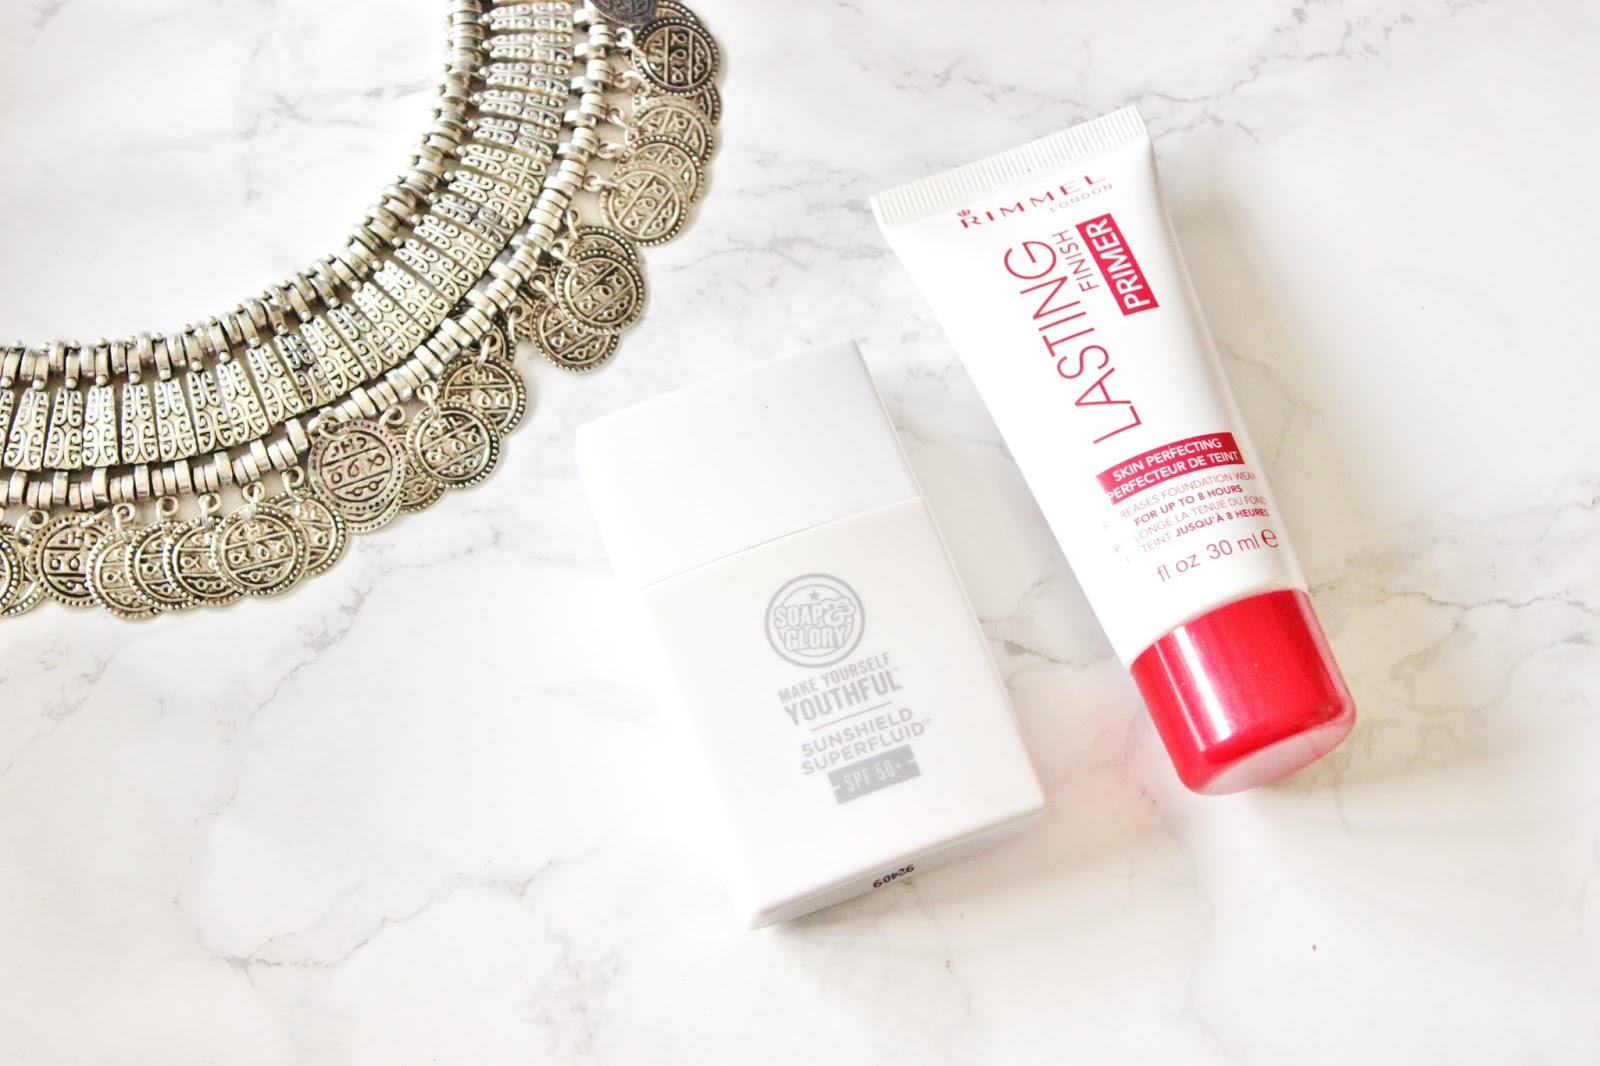 Soap and glory make yourself youthful sunshield SPF50 and Rimmel London Lasting Finish Primer